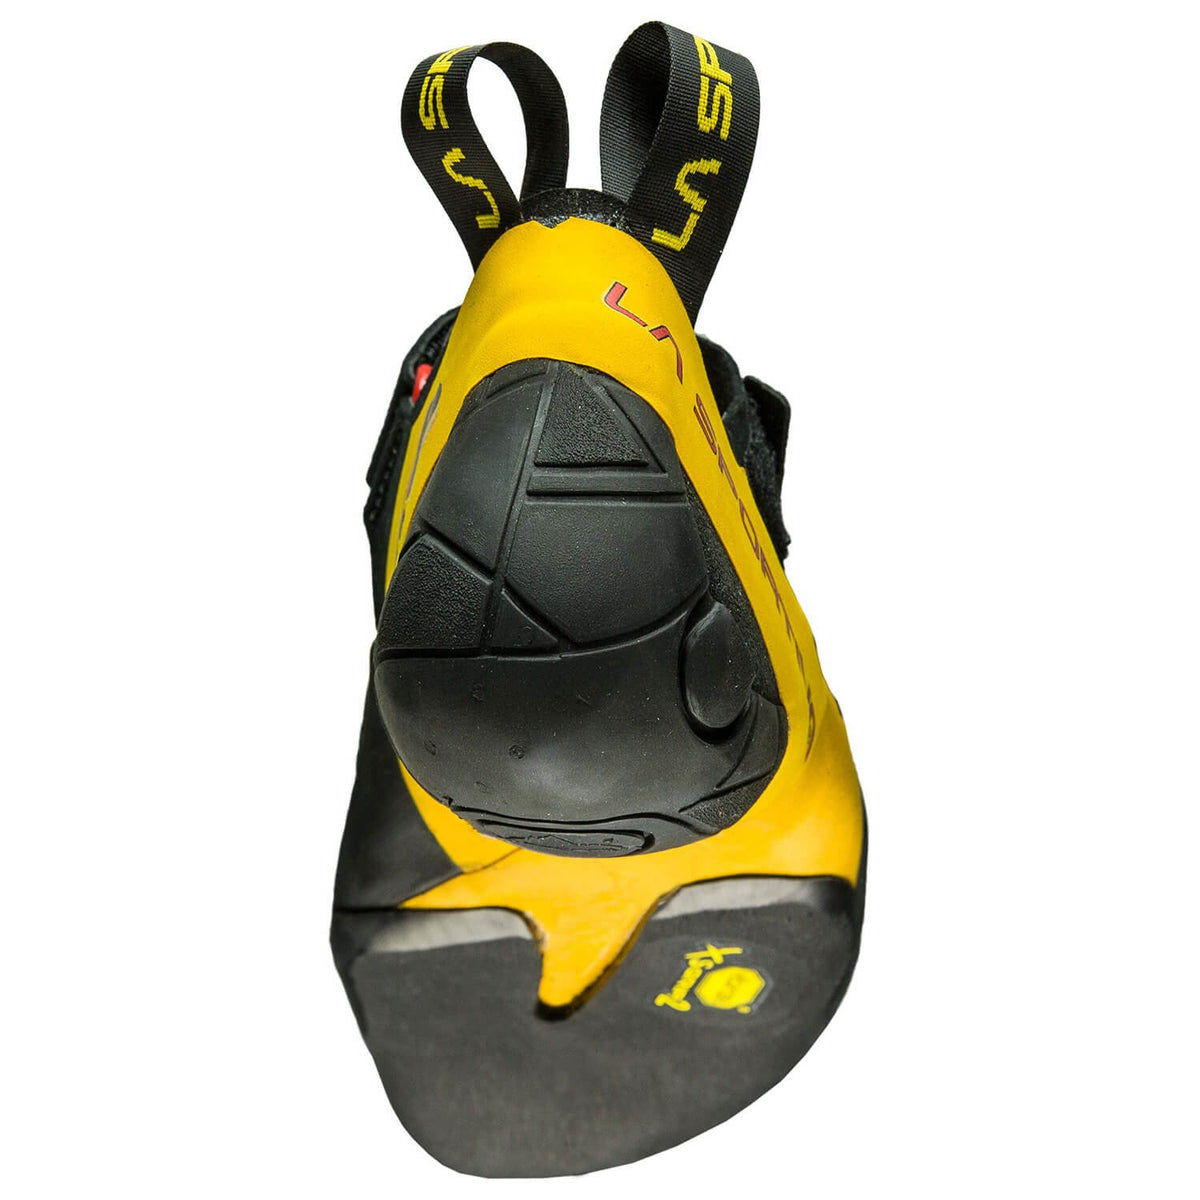 La Sportiva Skwama climbing shoe, rear view showing heel and sole design detail